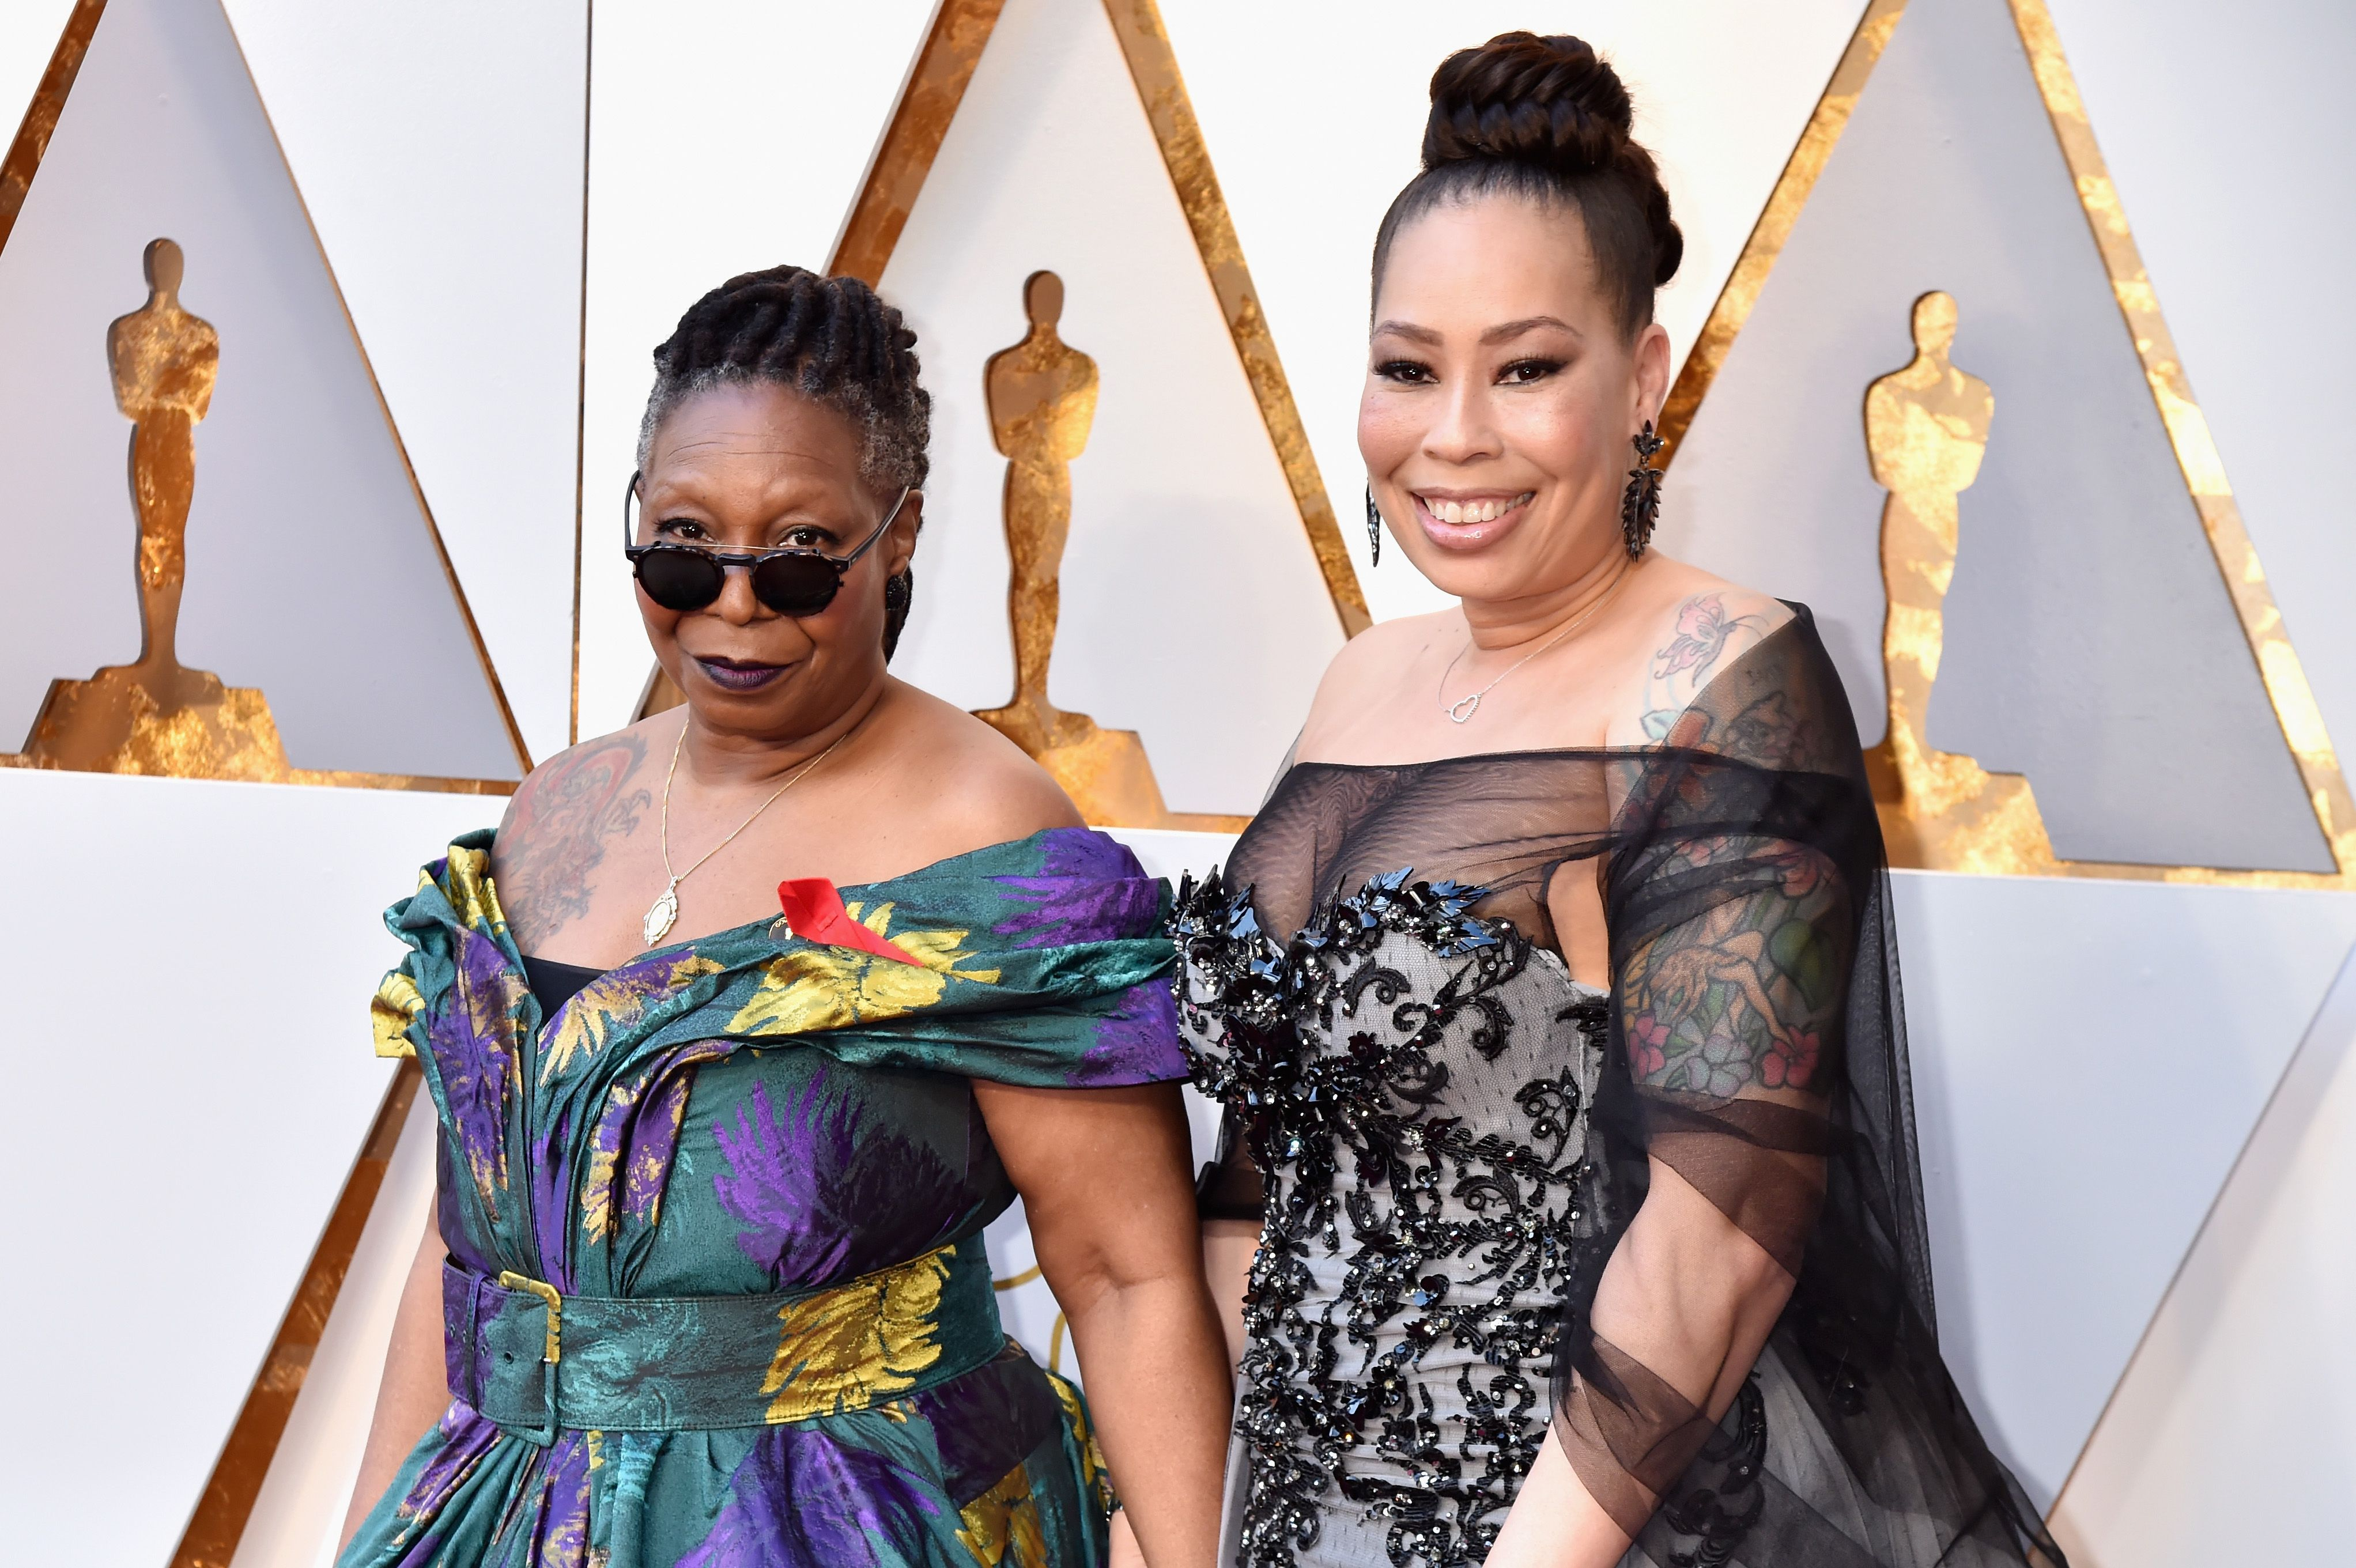 Whoopi Goldberg's daughter, Alex Martin, has remained within the entertainment world, working as an actress and producer ever since she appeared as Miss Golden Globe in 1994.